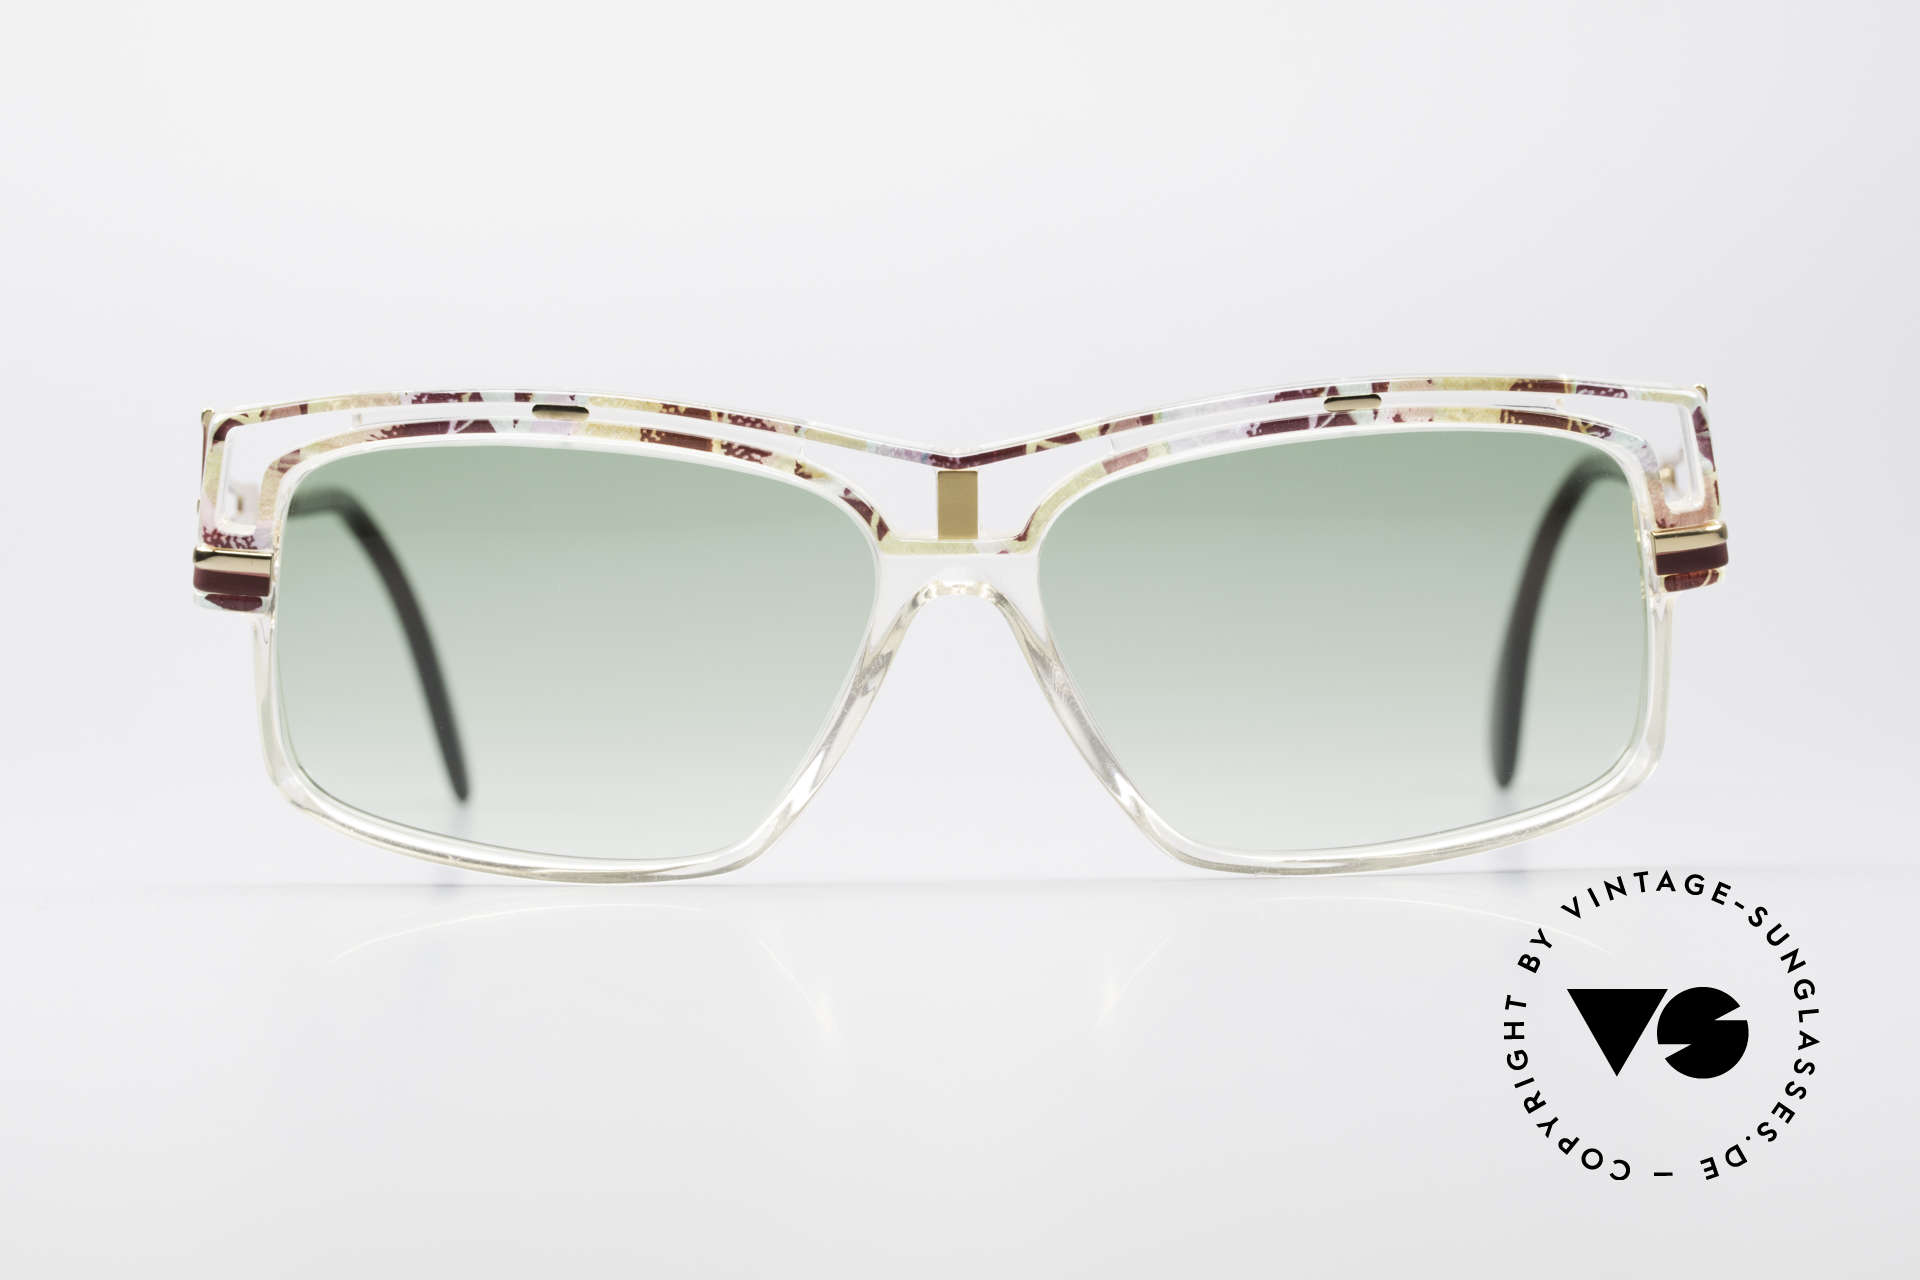 Cazal 365 90's Old School Hip Hop Shades, interesting combination of colors, form & materials, Made for Men and Women